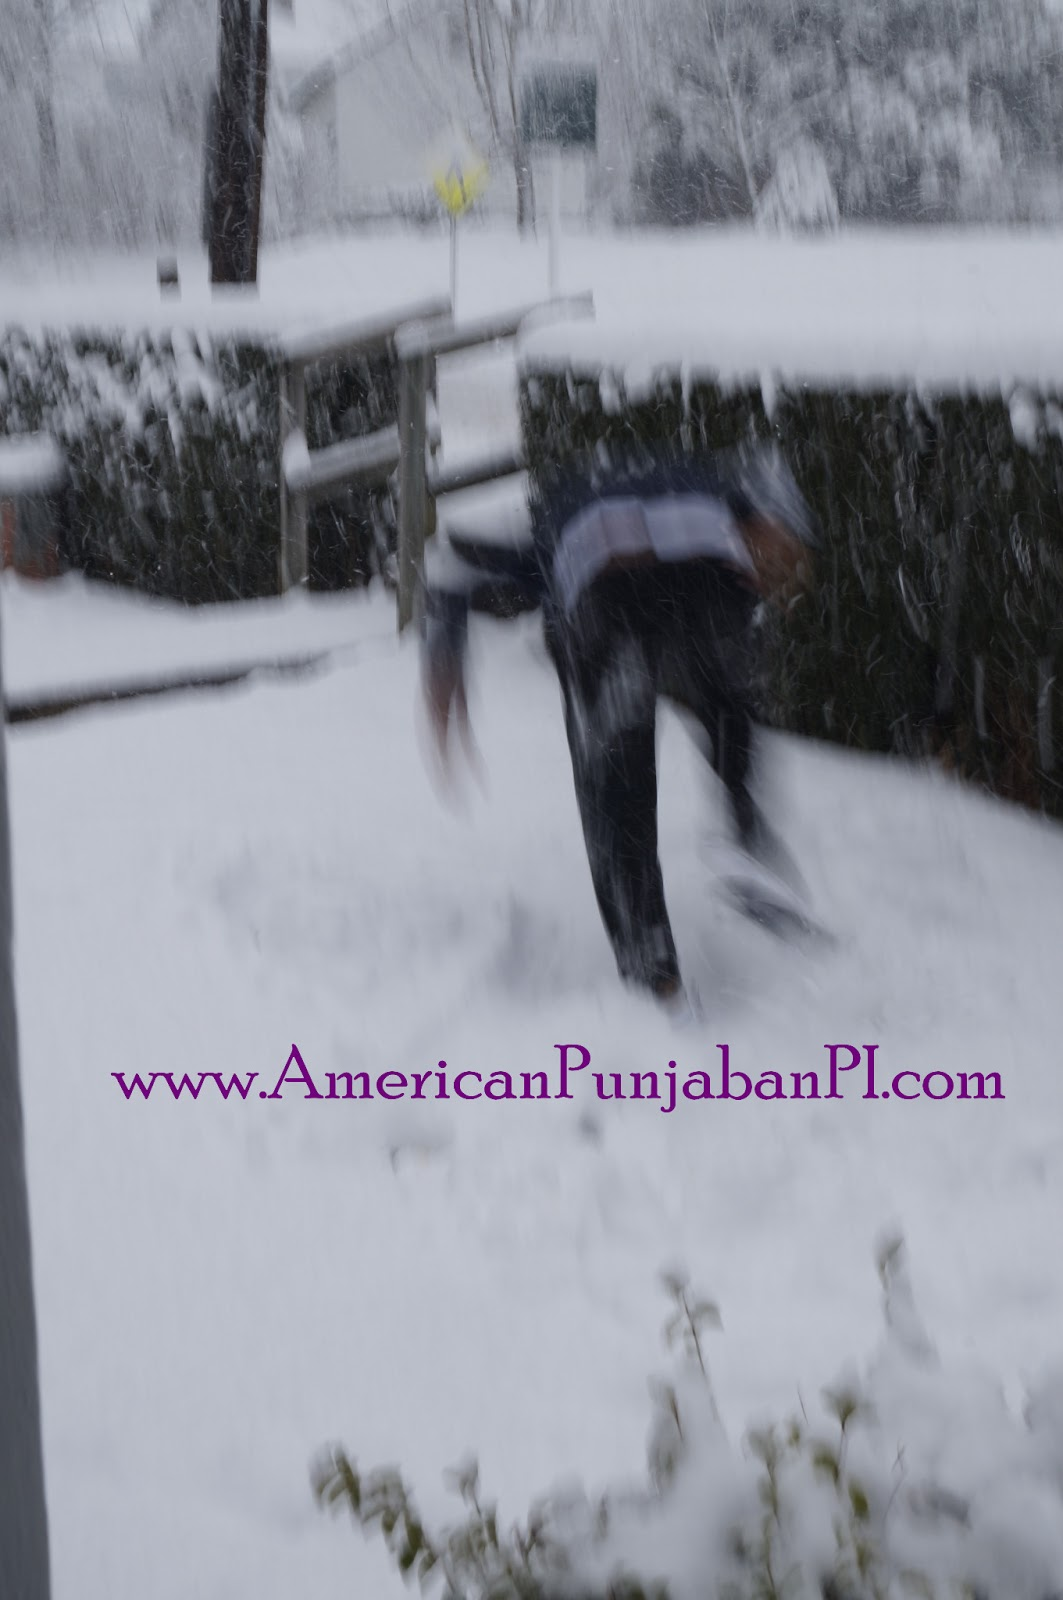 Punjabi snow angels